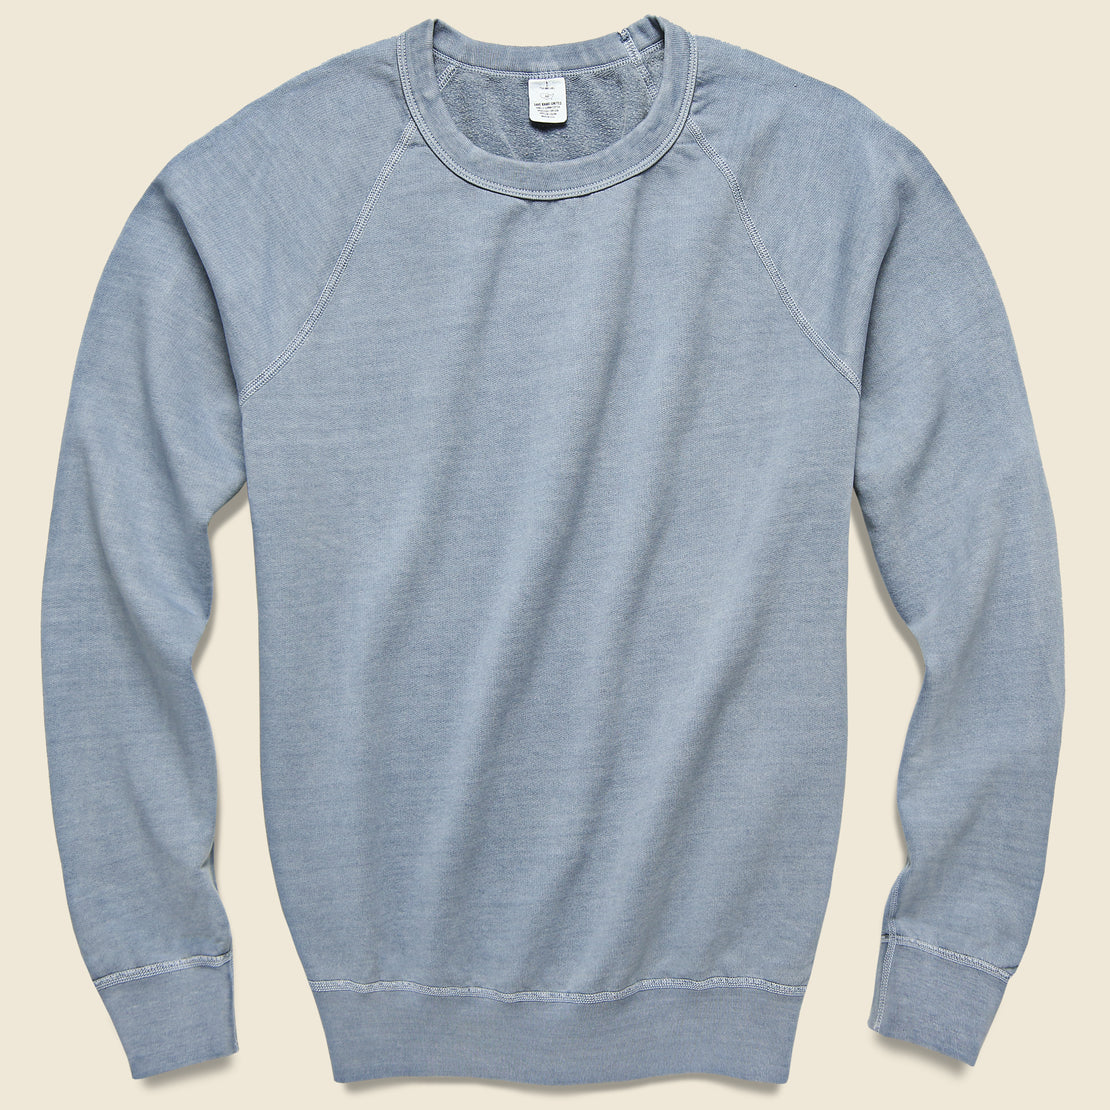 Save Khaki Pigment Dye Supima Fleece Sweatshirt - Storm